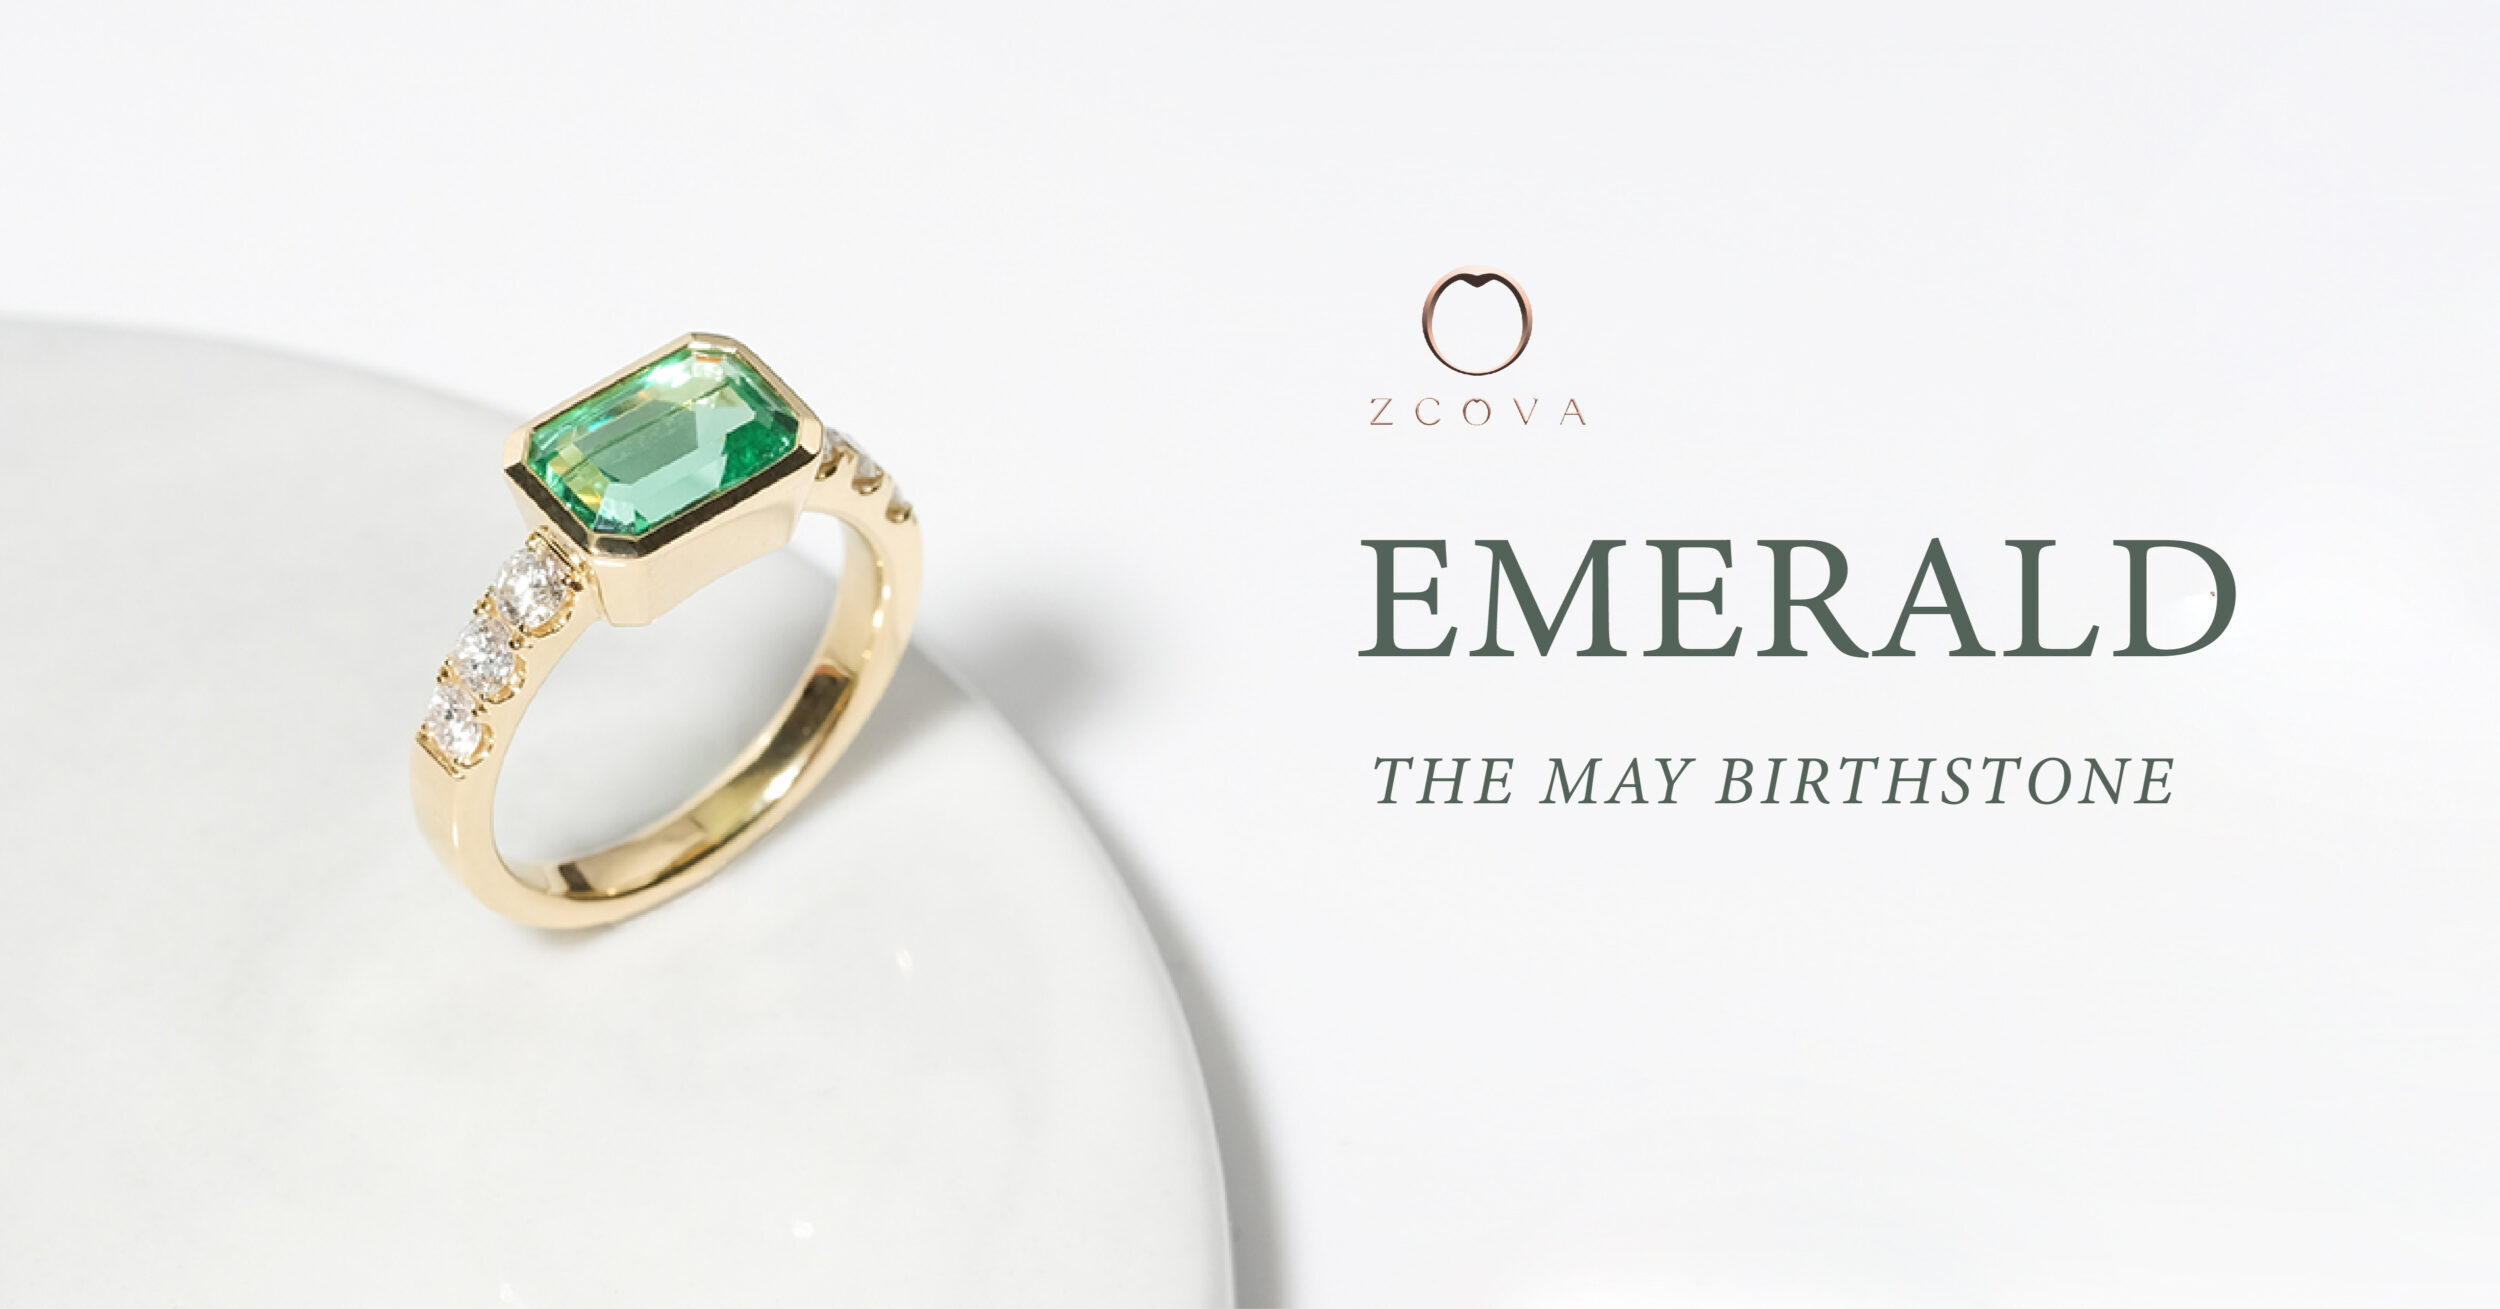 Emerald Gemstone May Birthstone